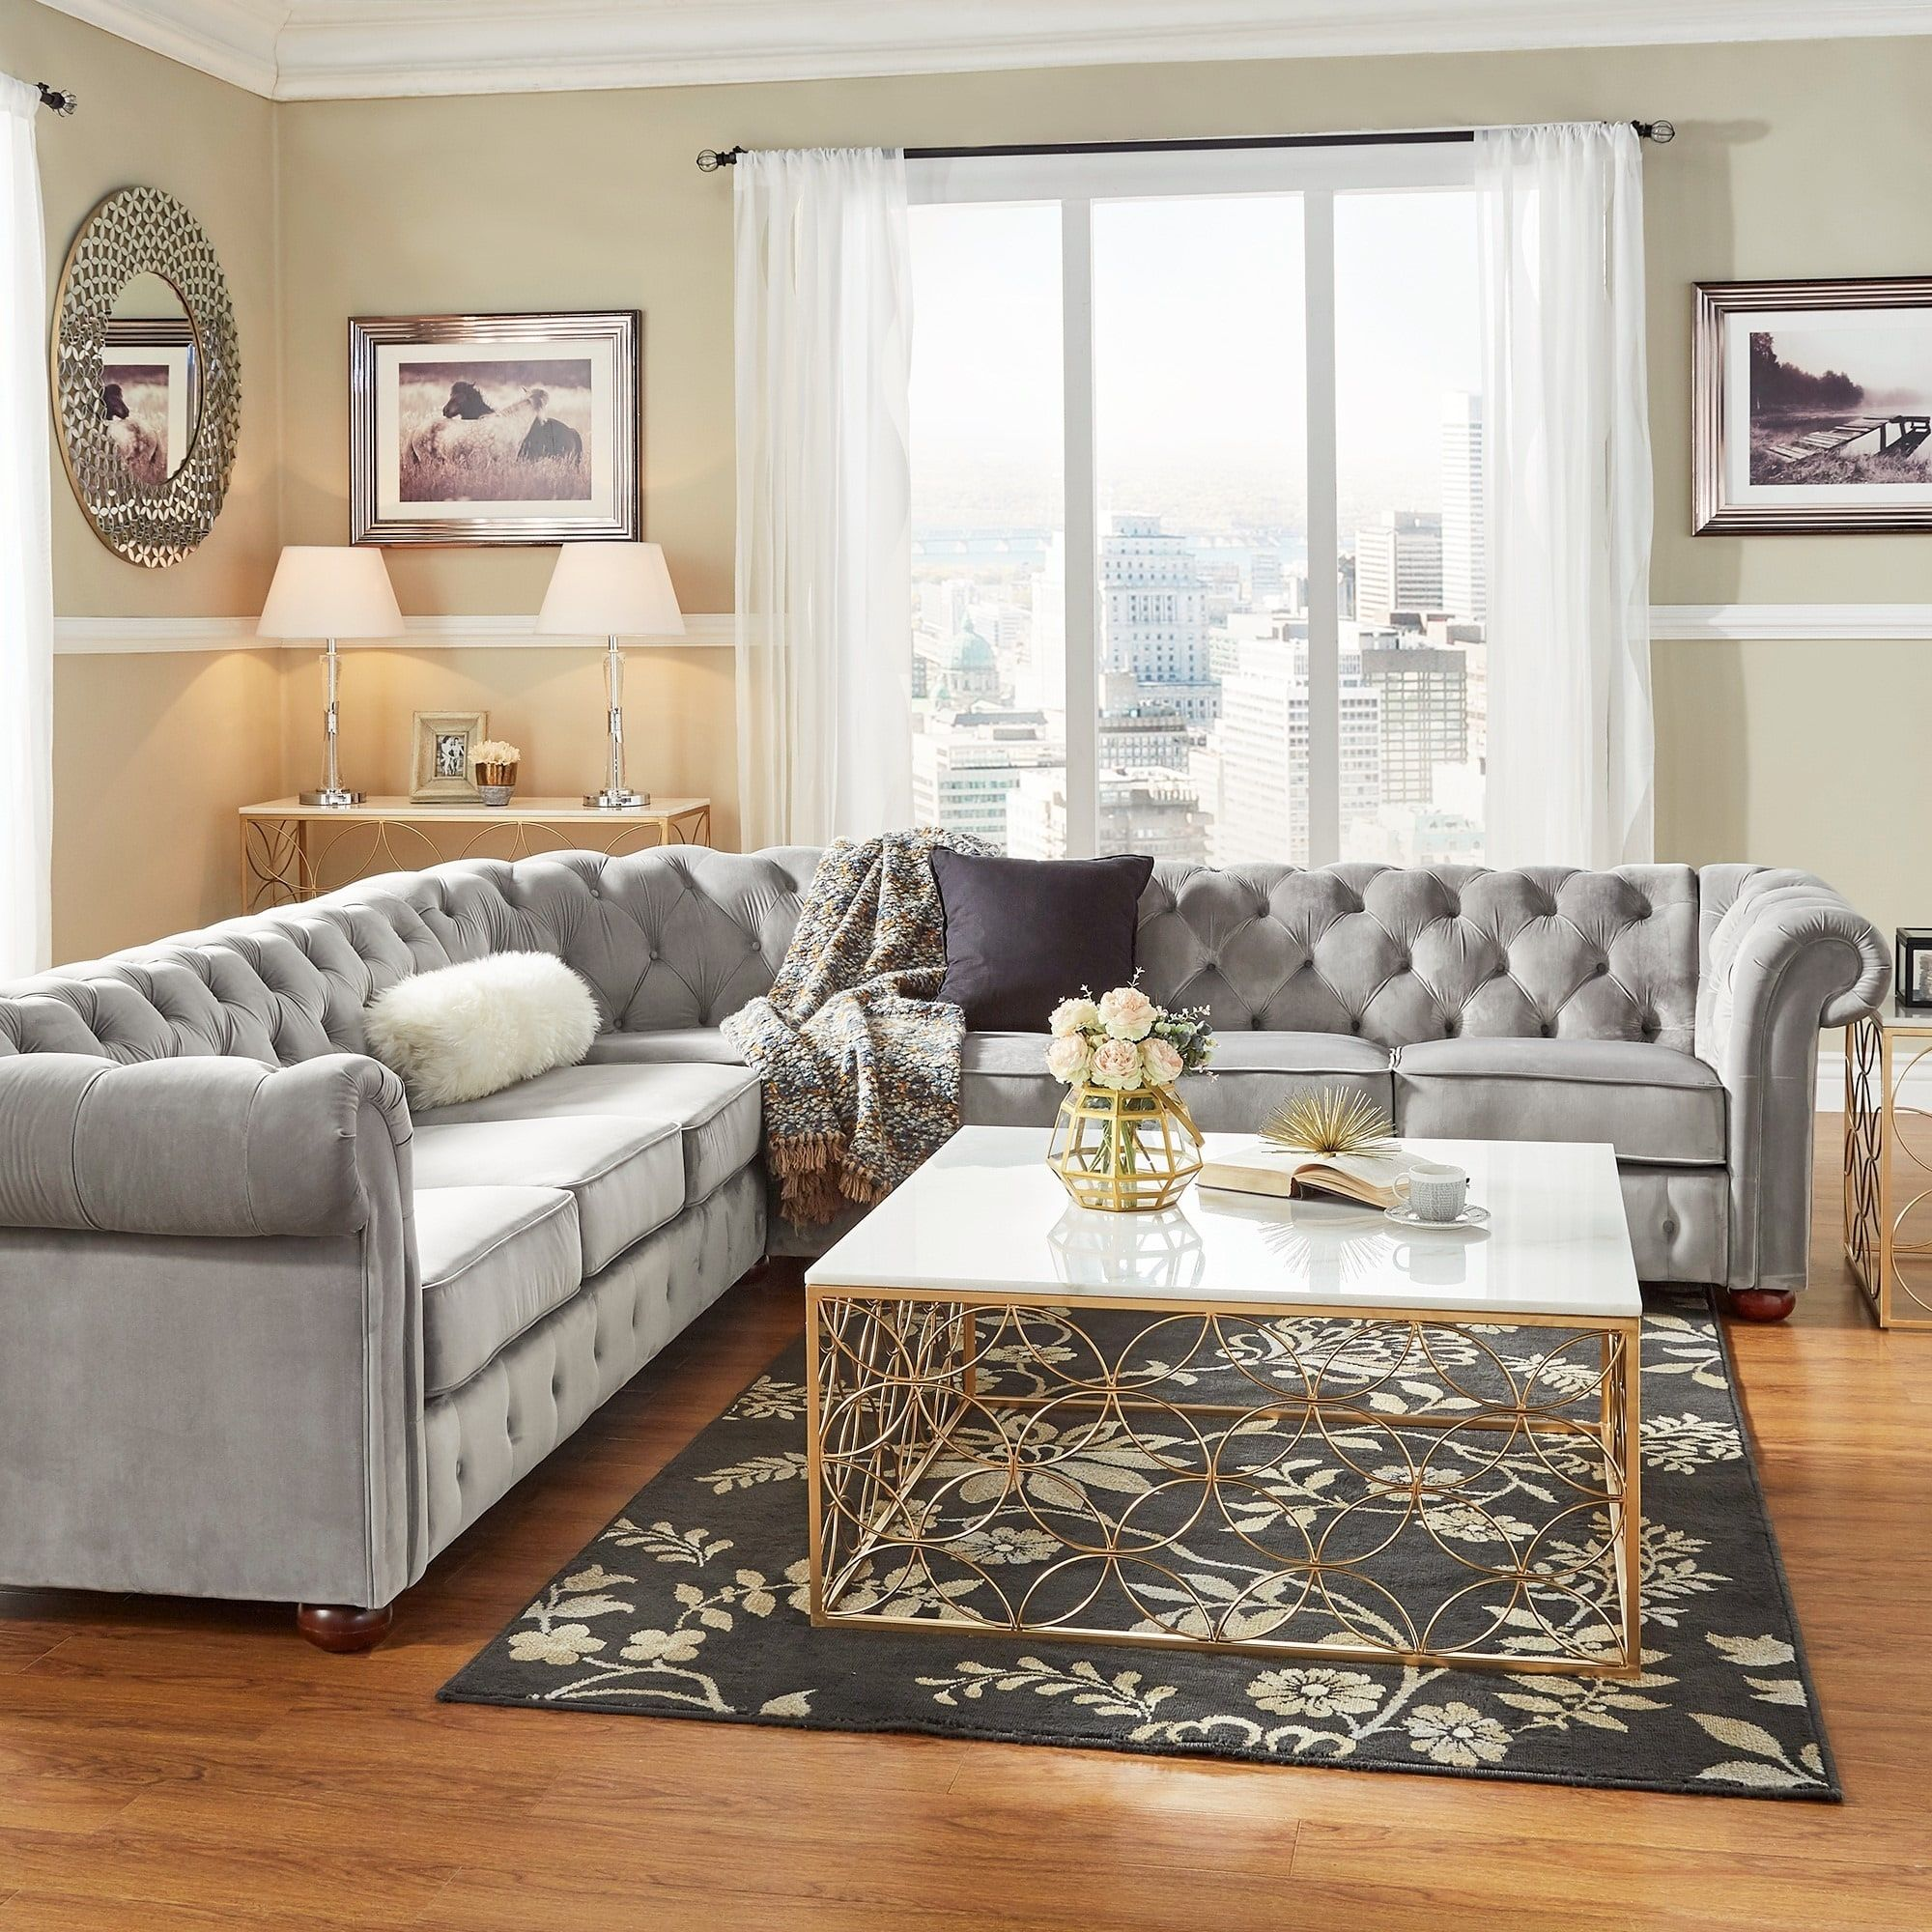 knightsbridge tufted scroll arm chesterfield 7 seat l shaped sectional by inspire q artisan. Black Bedroom Furniture Sets. Home Design Ideas